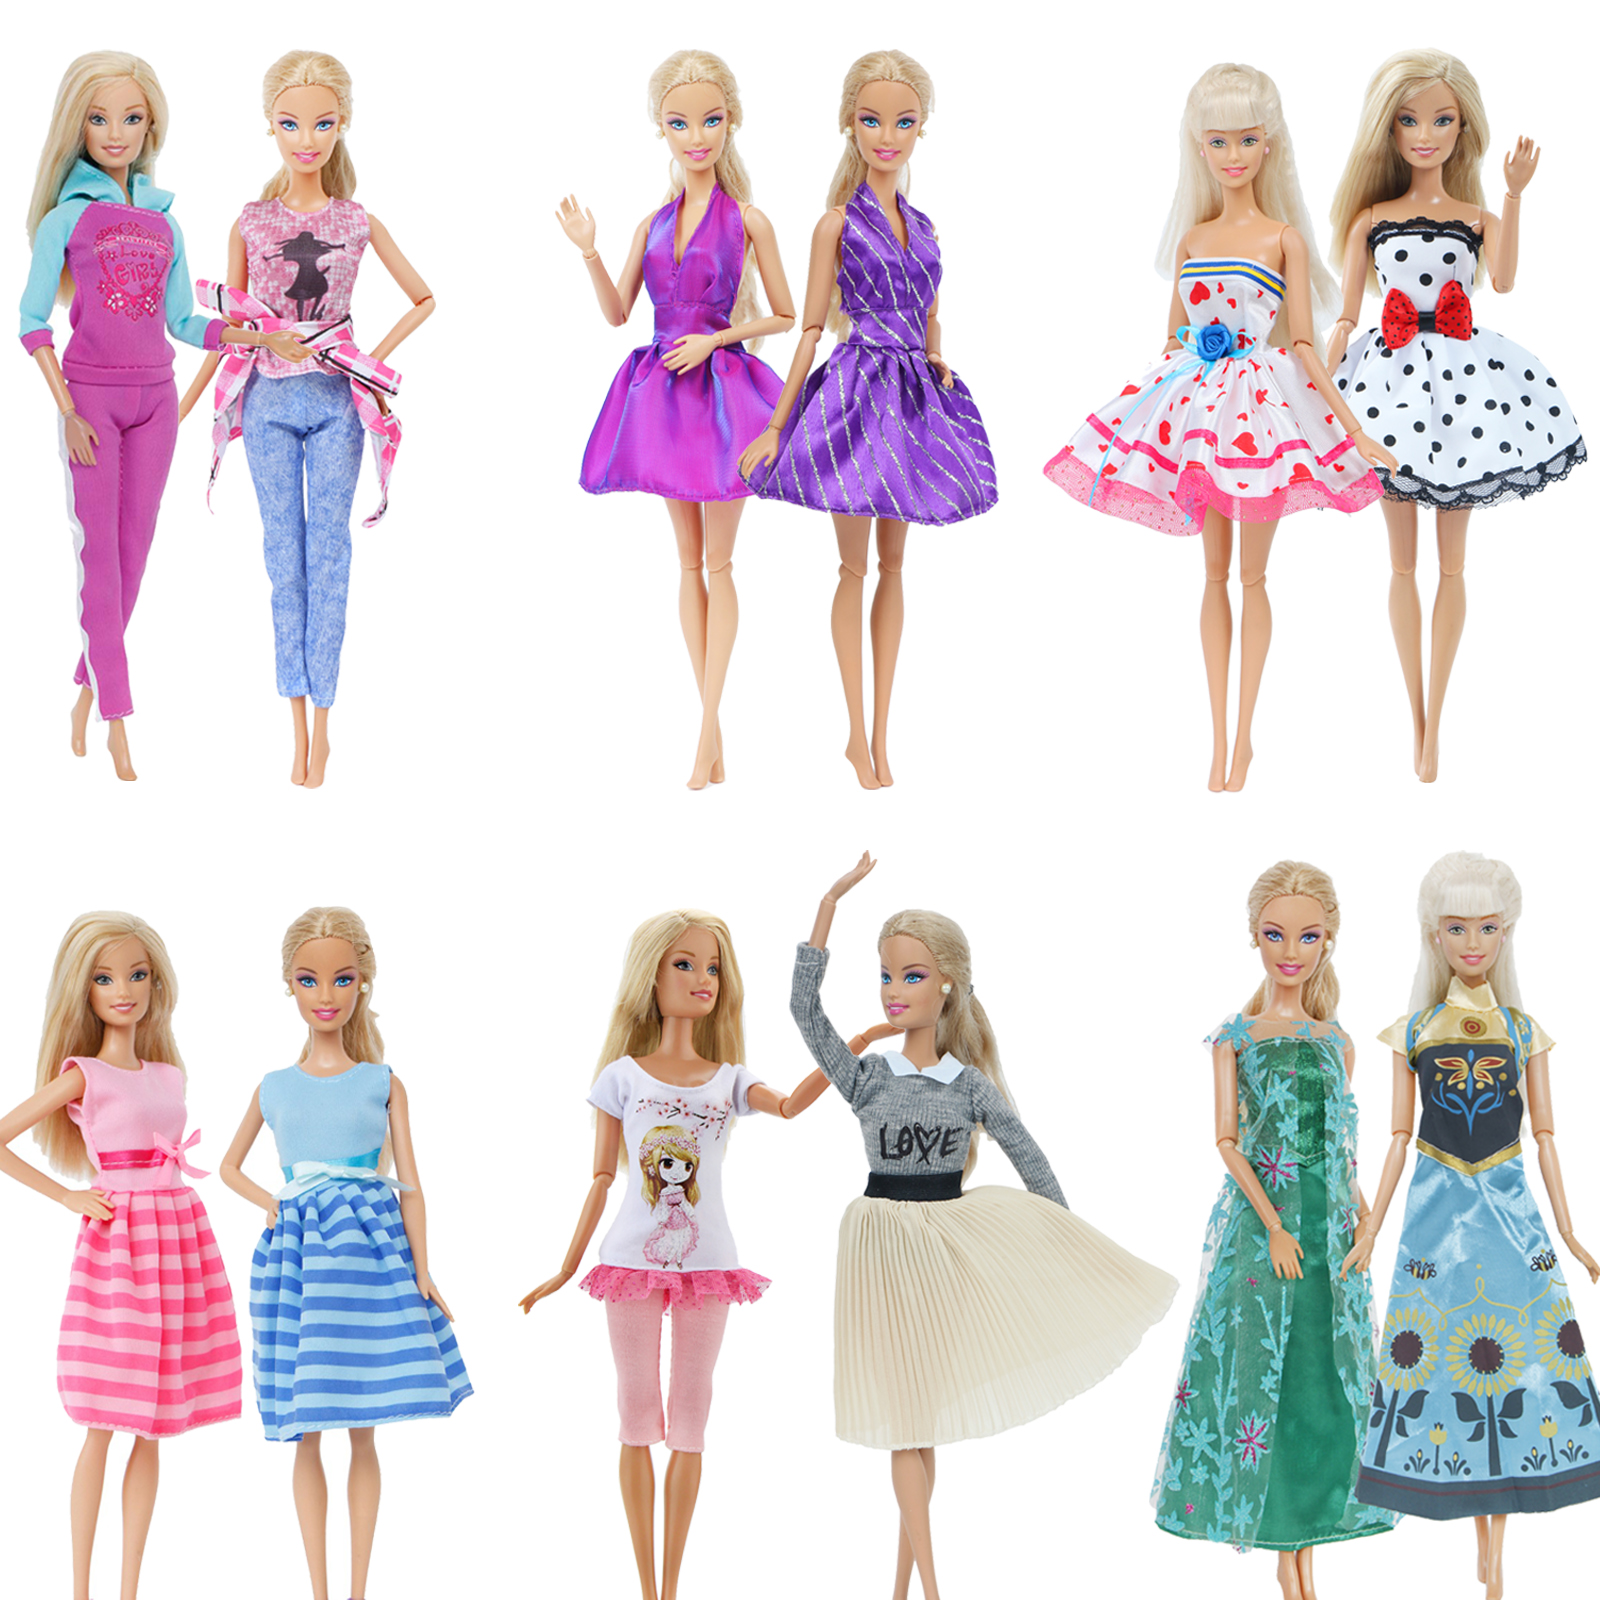 2 Pcs / Lot Handmade Doll Dress For Barbie Doll Casual Daily Wear Twins Outfit Skirt Pink Blue Clothes Accessories Kids Toy